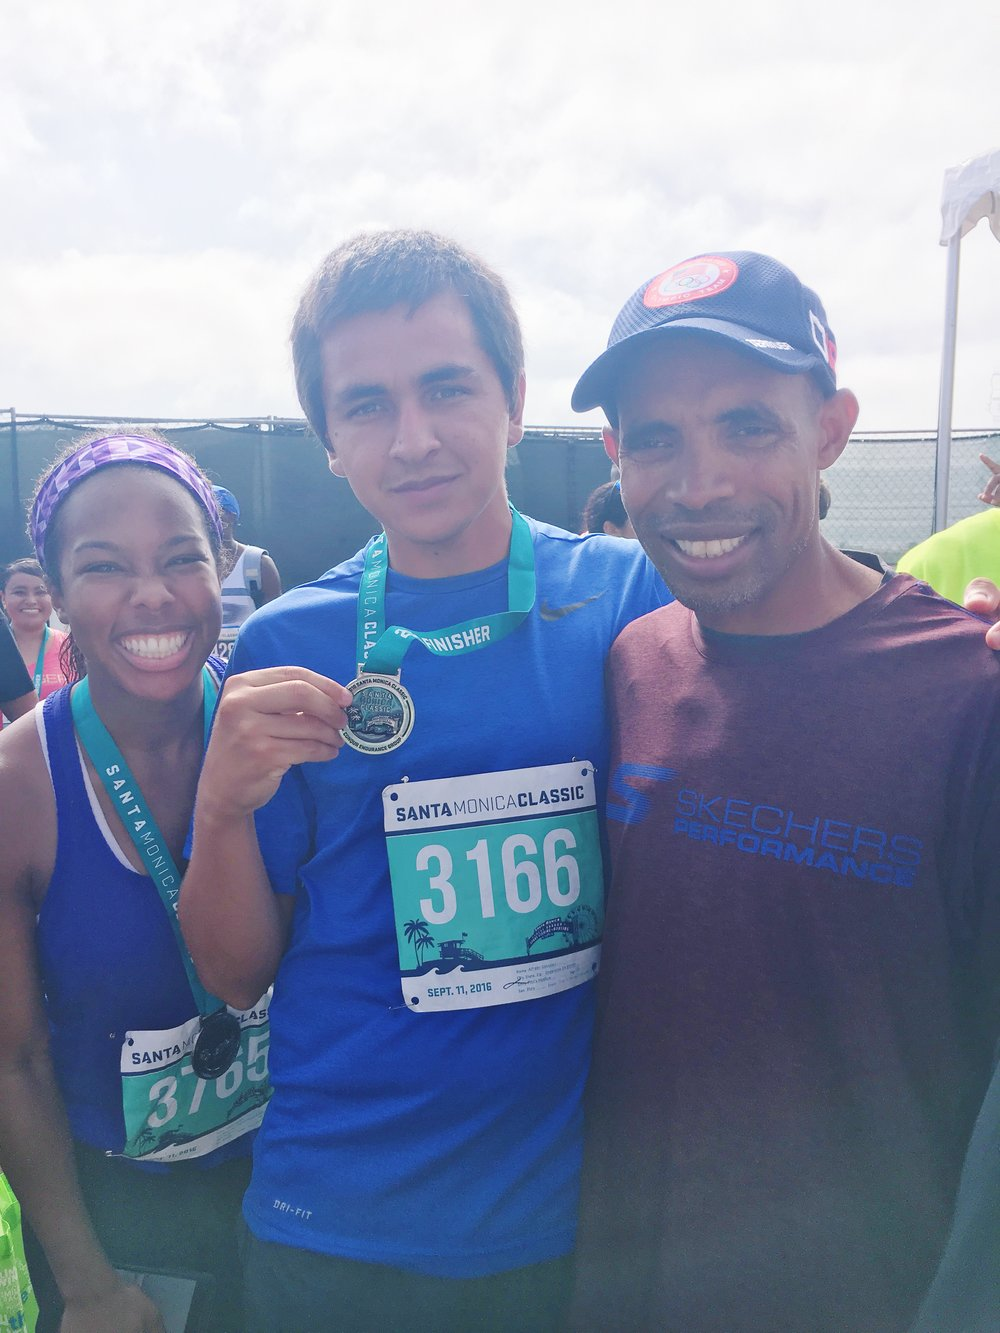 Picture with Meb Keflezighi